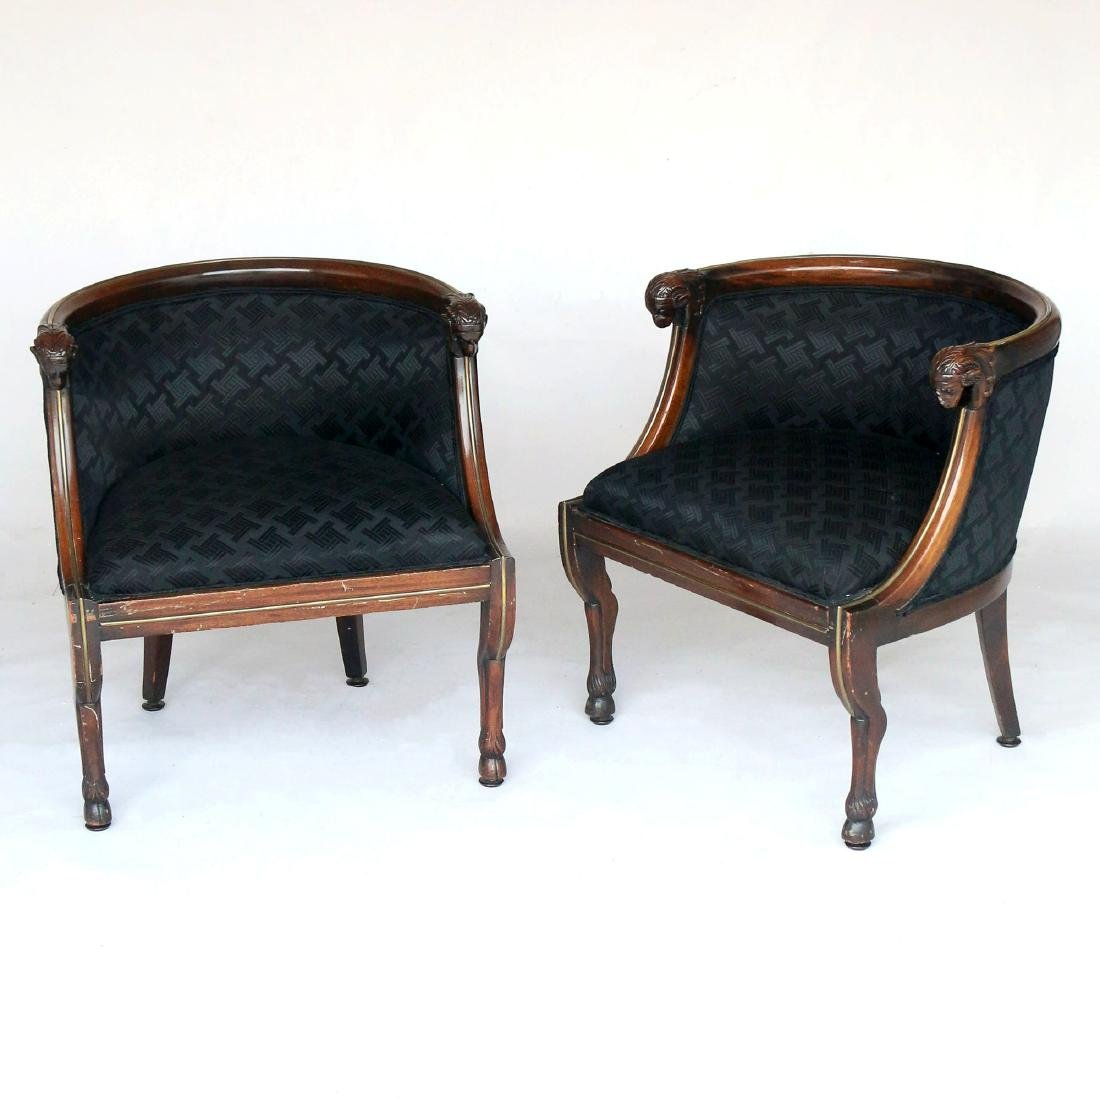 PAIR REGENCY BARREL-BACK ARM CHAIRS